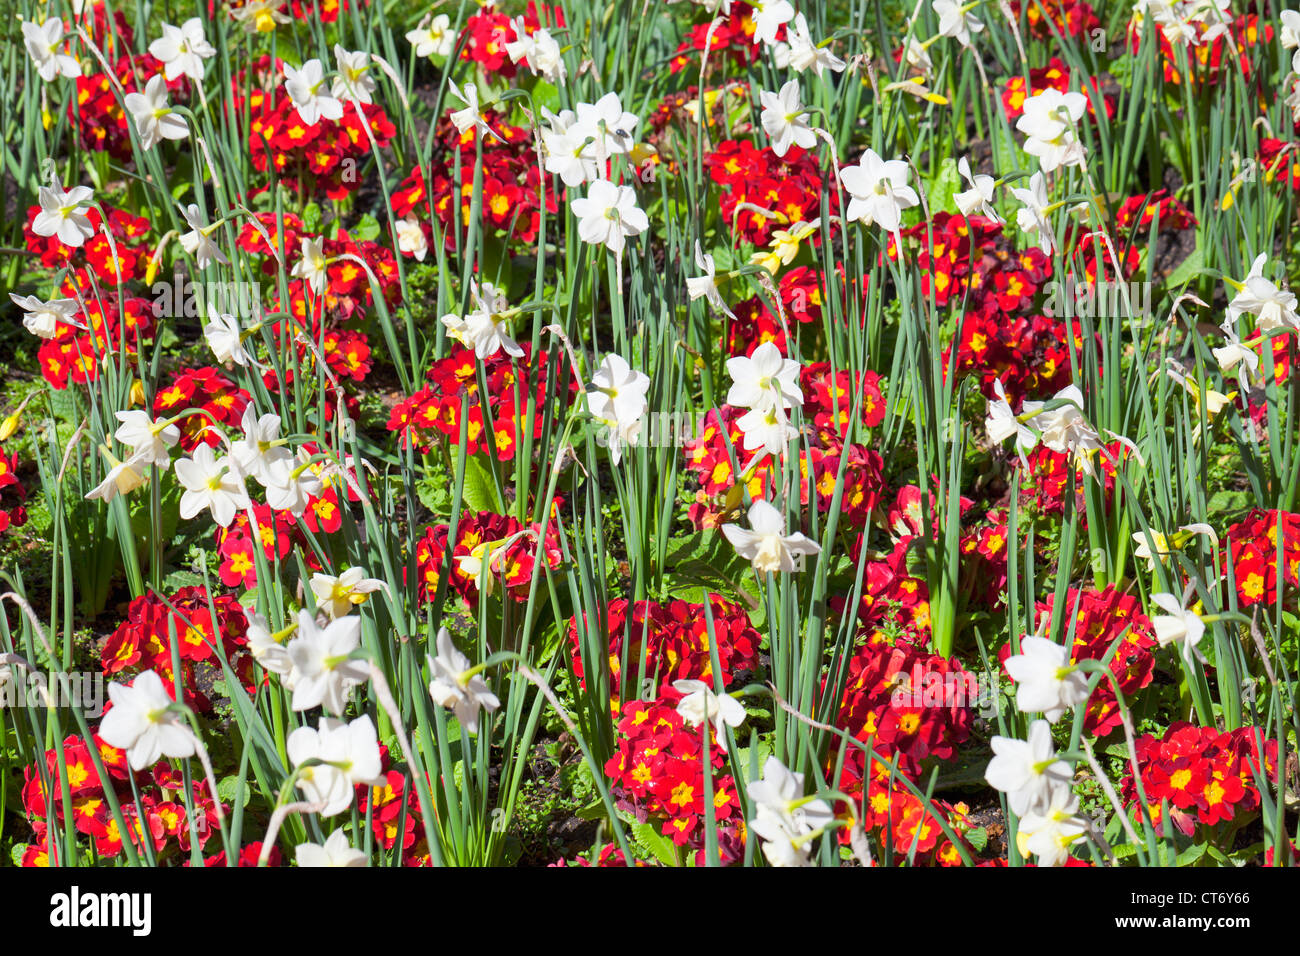 Colorful flower bed with daffodils and pansies, UK - Stock Image